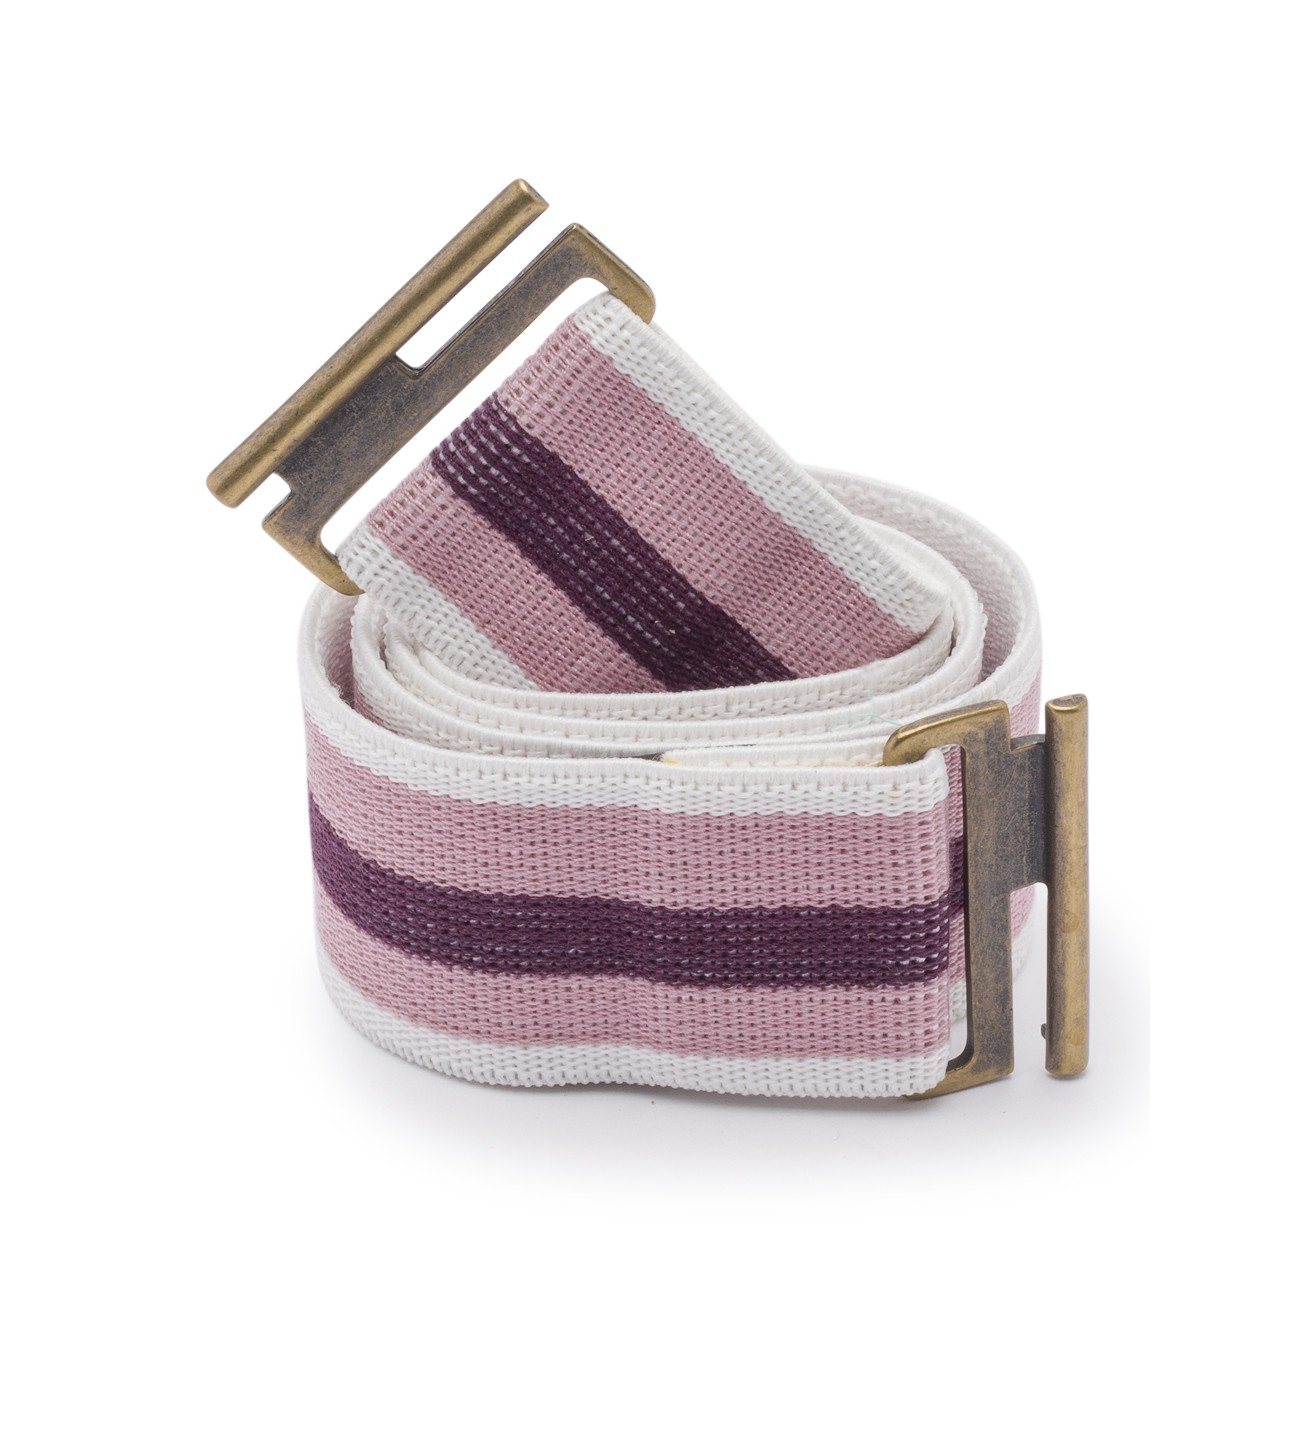 LARA_MOTI_BICOLOR_STRIPED_BELT_MARIONA_FASHION_CLOTHING_WOMAN_SHOP_ONLINE_CM-19-V-RAYAS